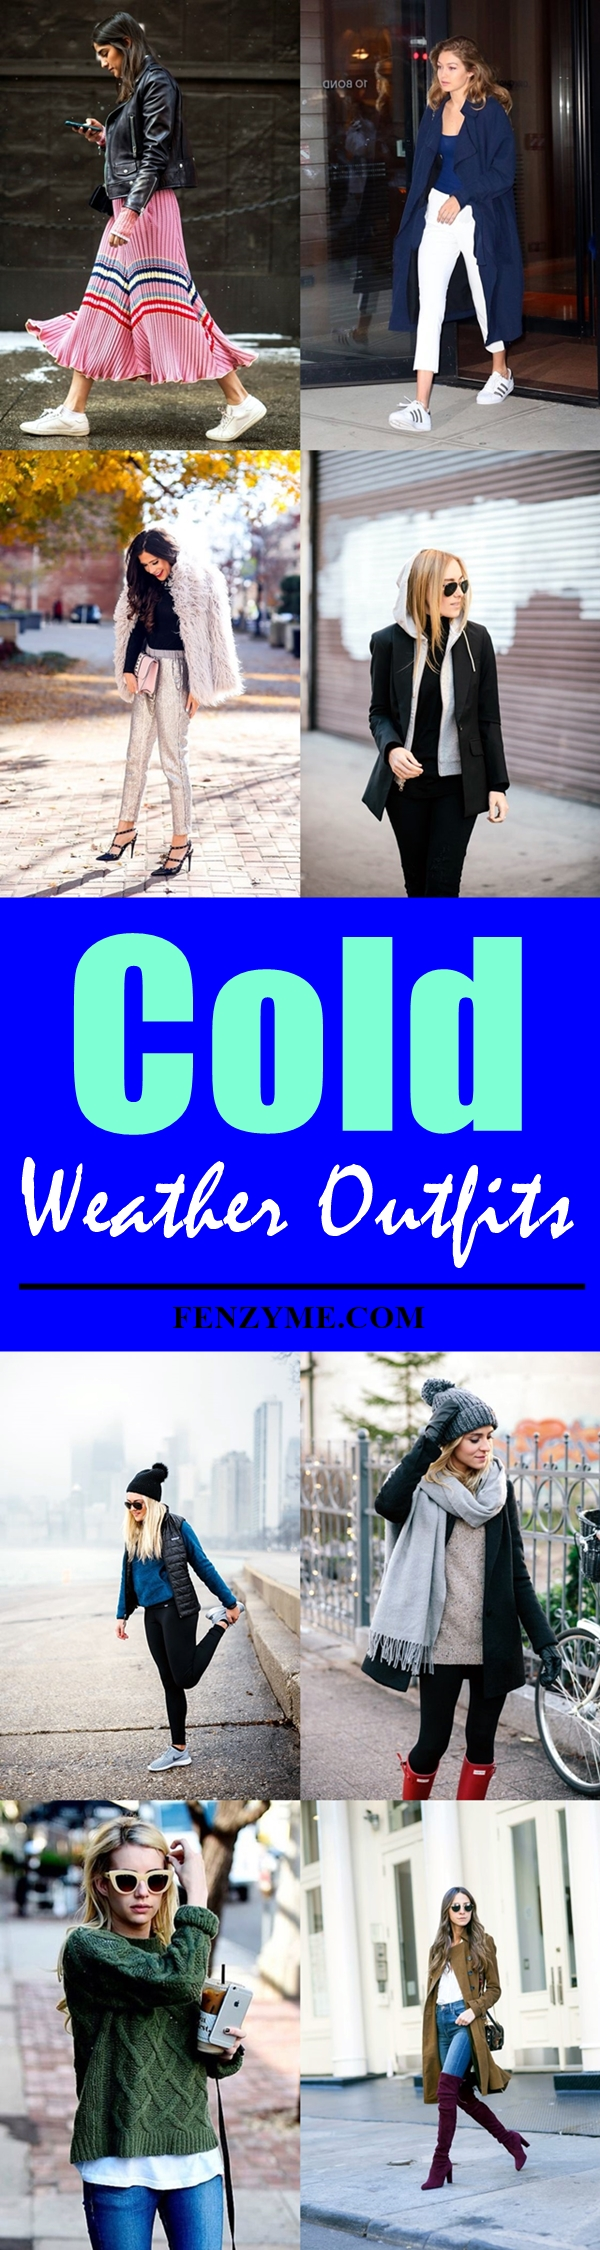 cold-weather-outfits-1-tile